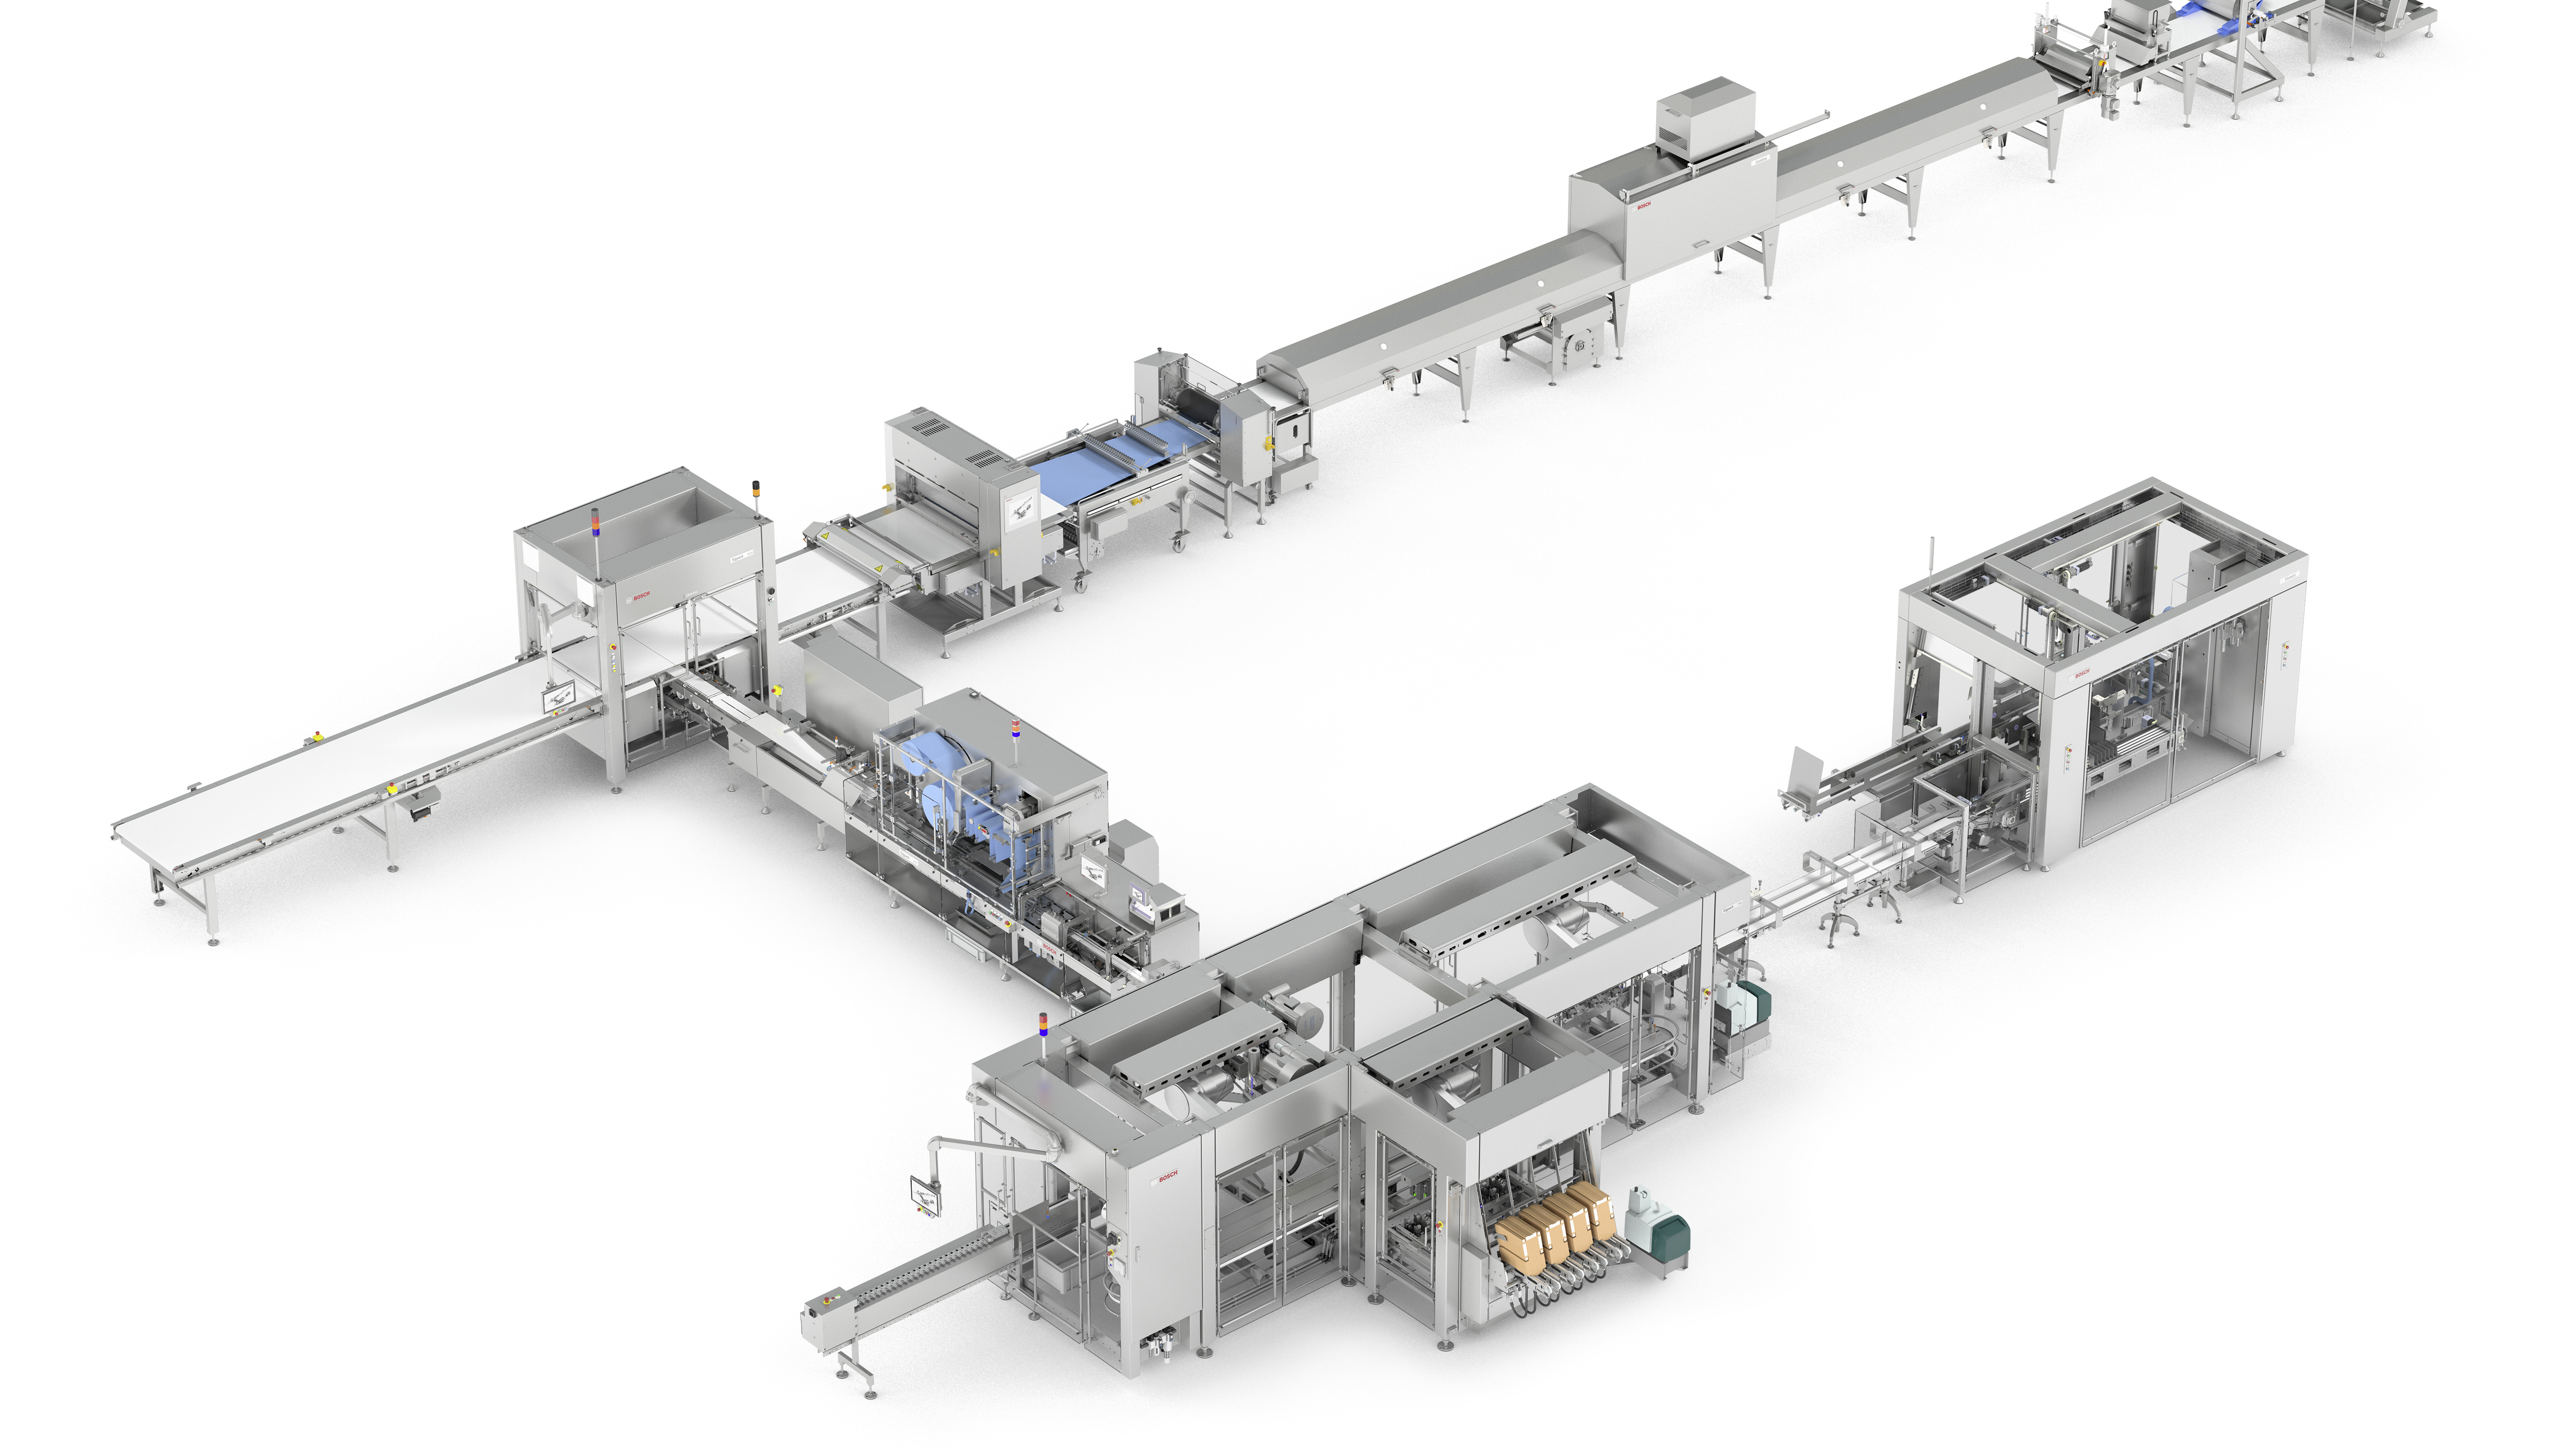 Comprehensive system solution from Bosch for granola bars